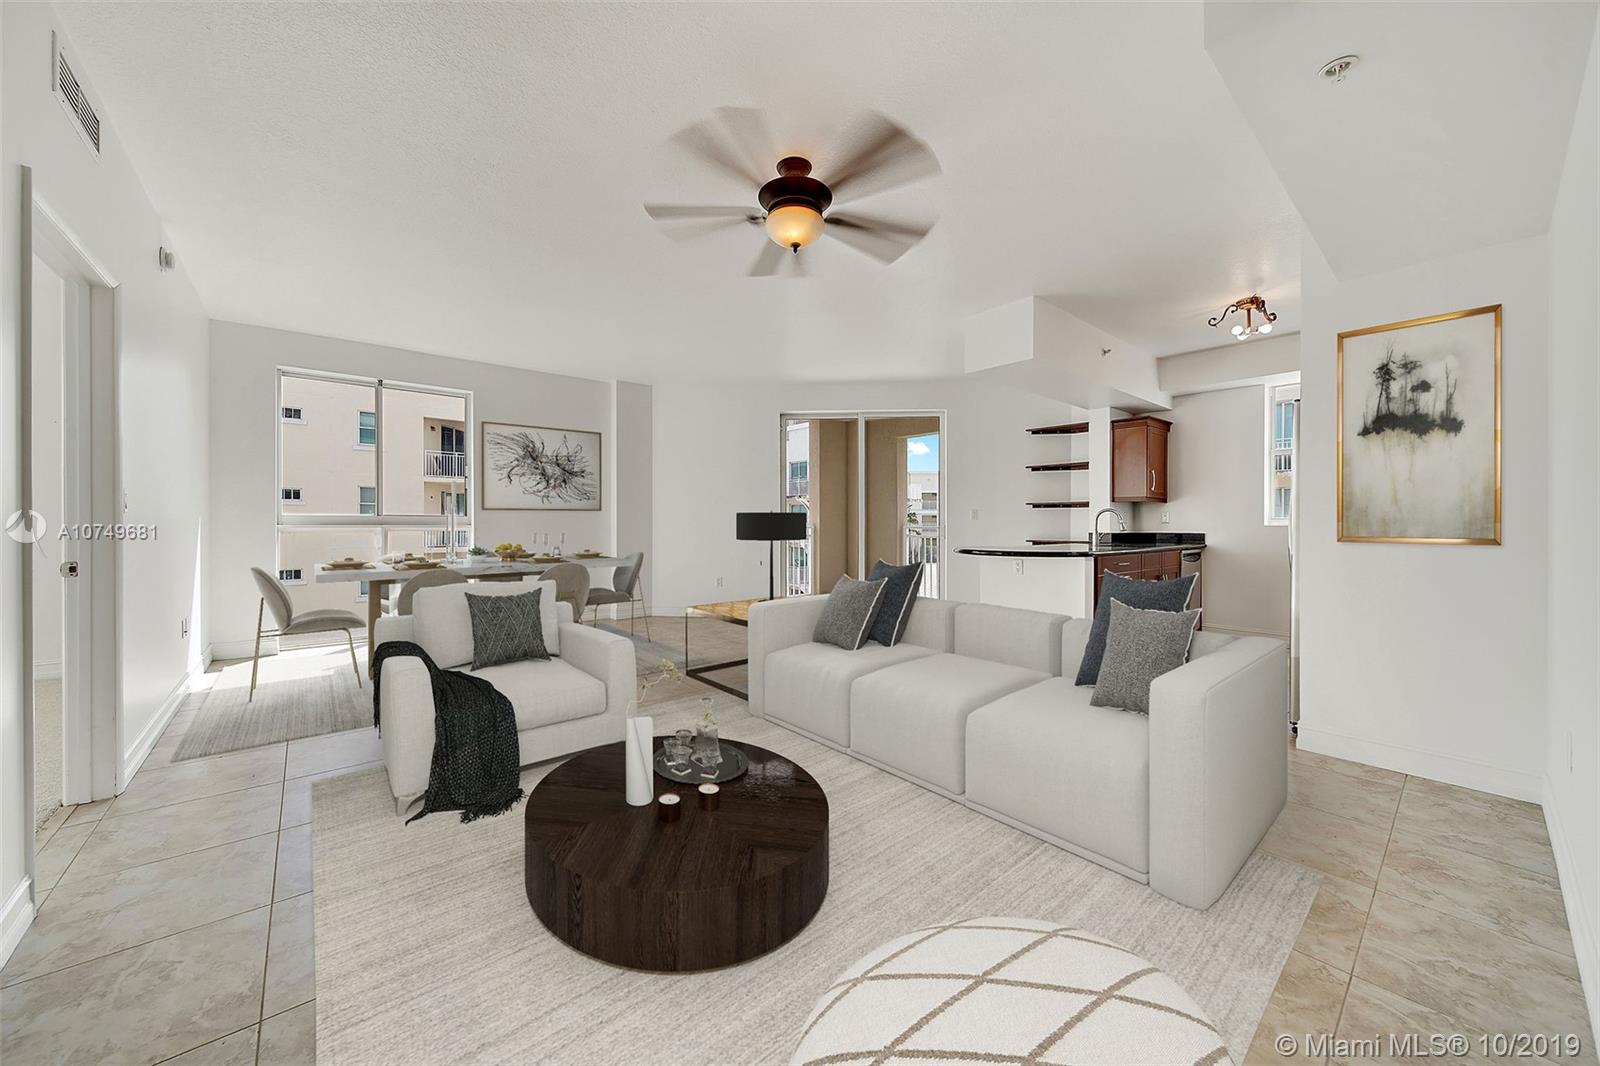 7285 SW 90th St, Kendall, Florida